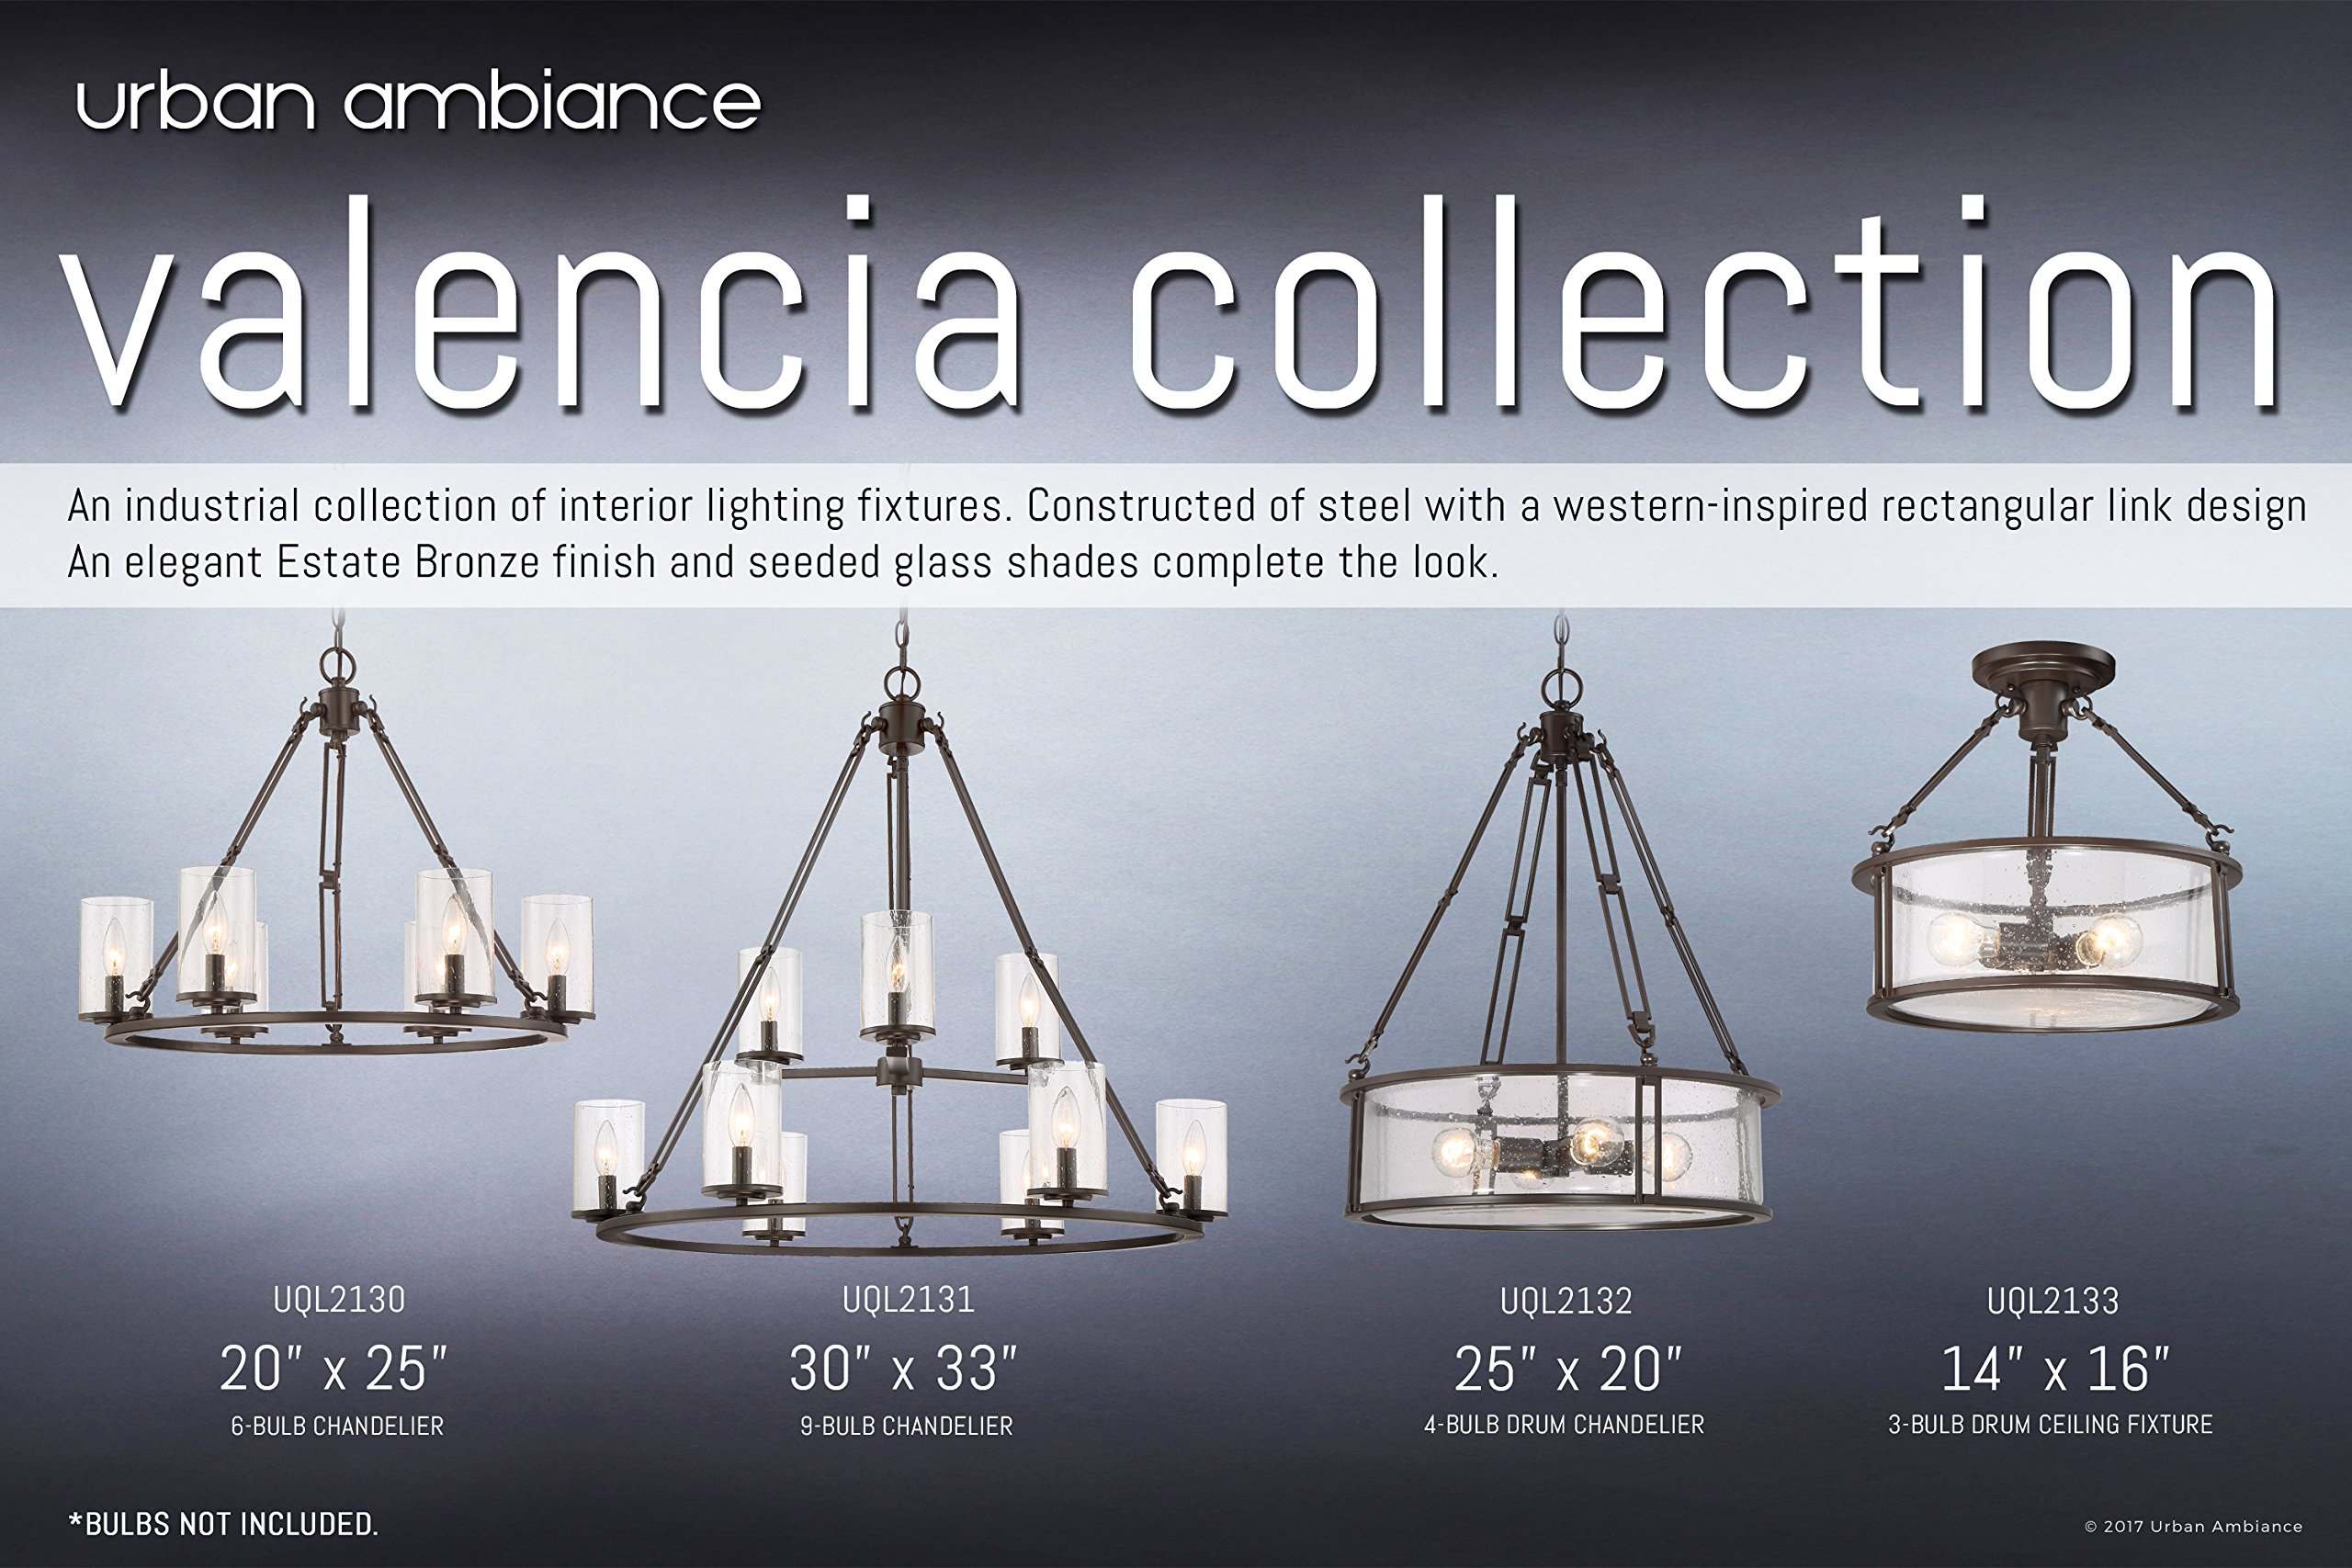 Luxury Industrial Chandelier, Large Size: 30''H x 33''W, with Western Style Elements, Rectangular Link Design, Elegant Estate Bronze Finish and Seeded Glass, UQL2131 by Urban Ambiance by Urban Ambiance (Image #6)